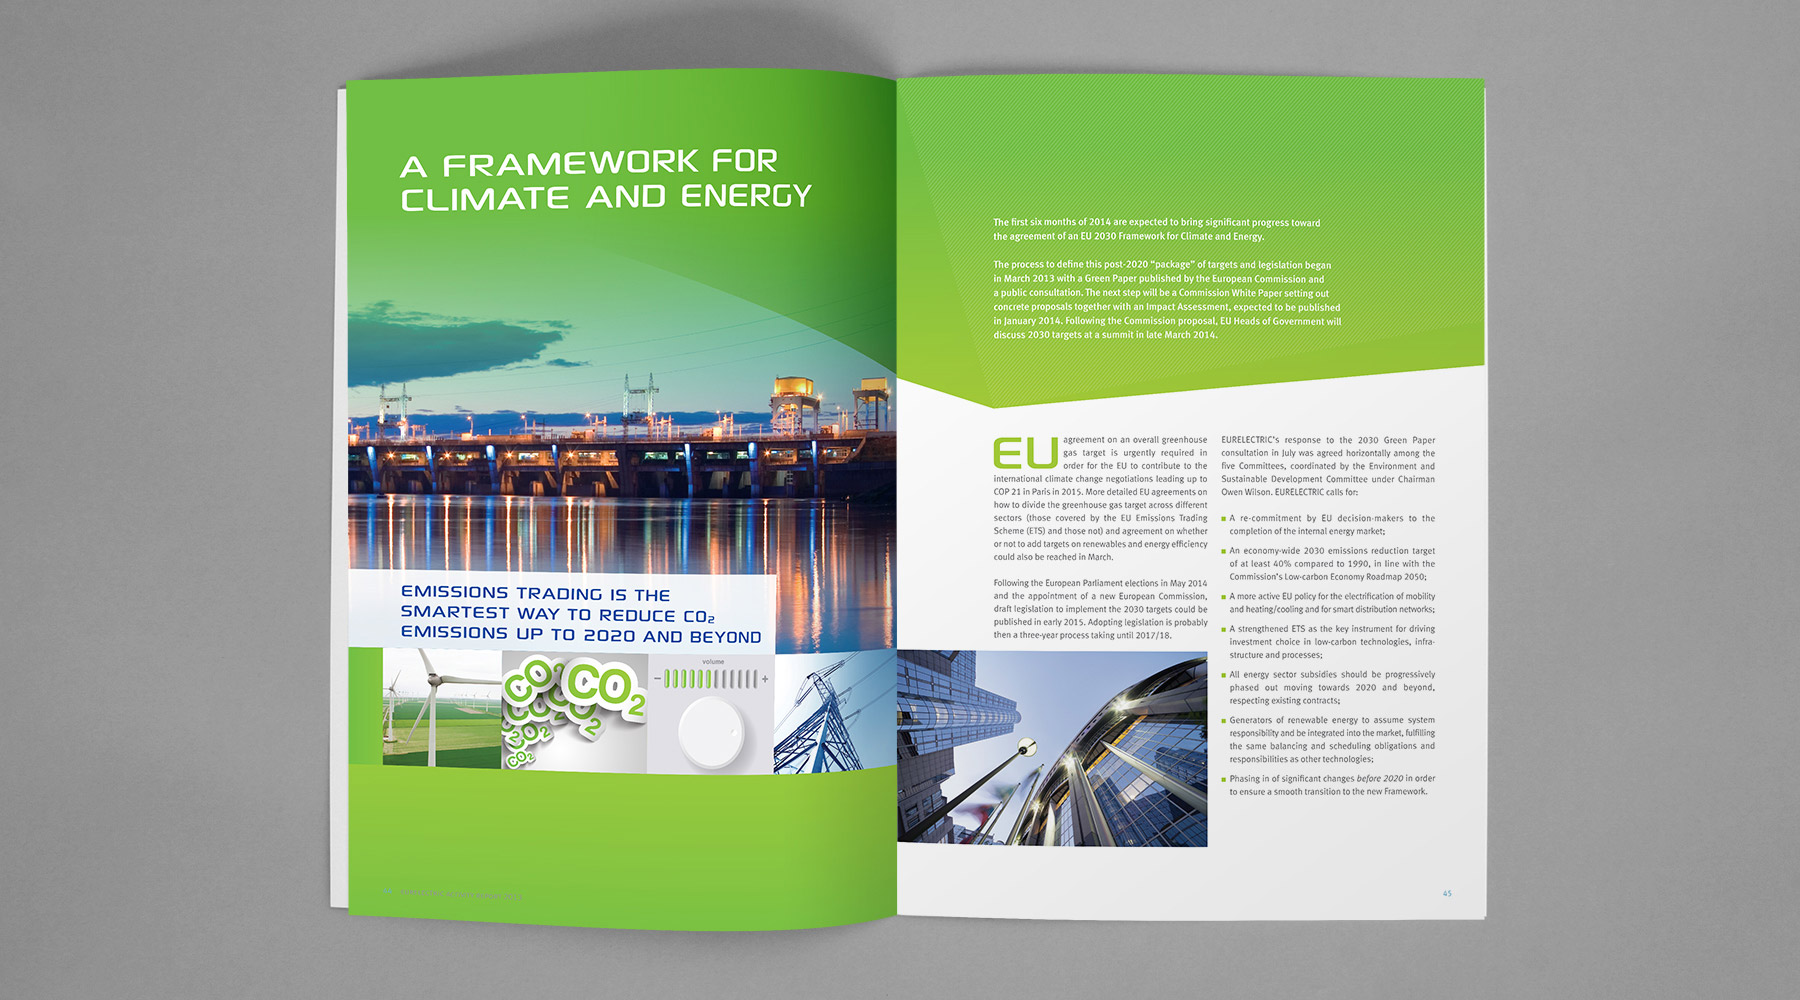 Case Study: Eurelectric - 05